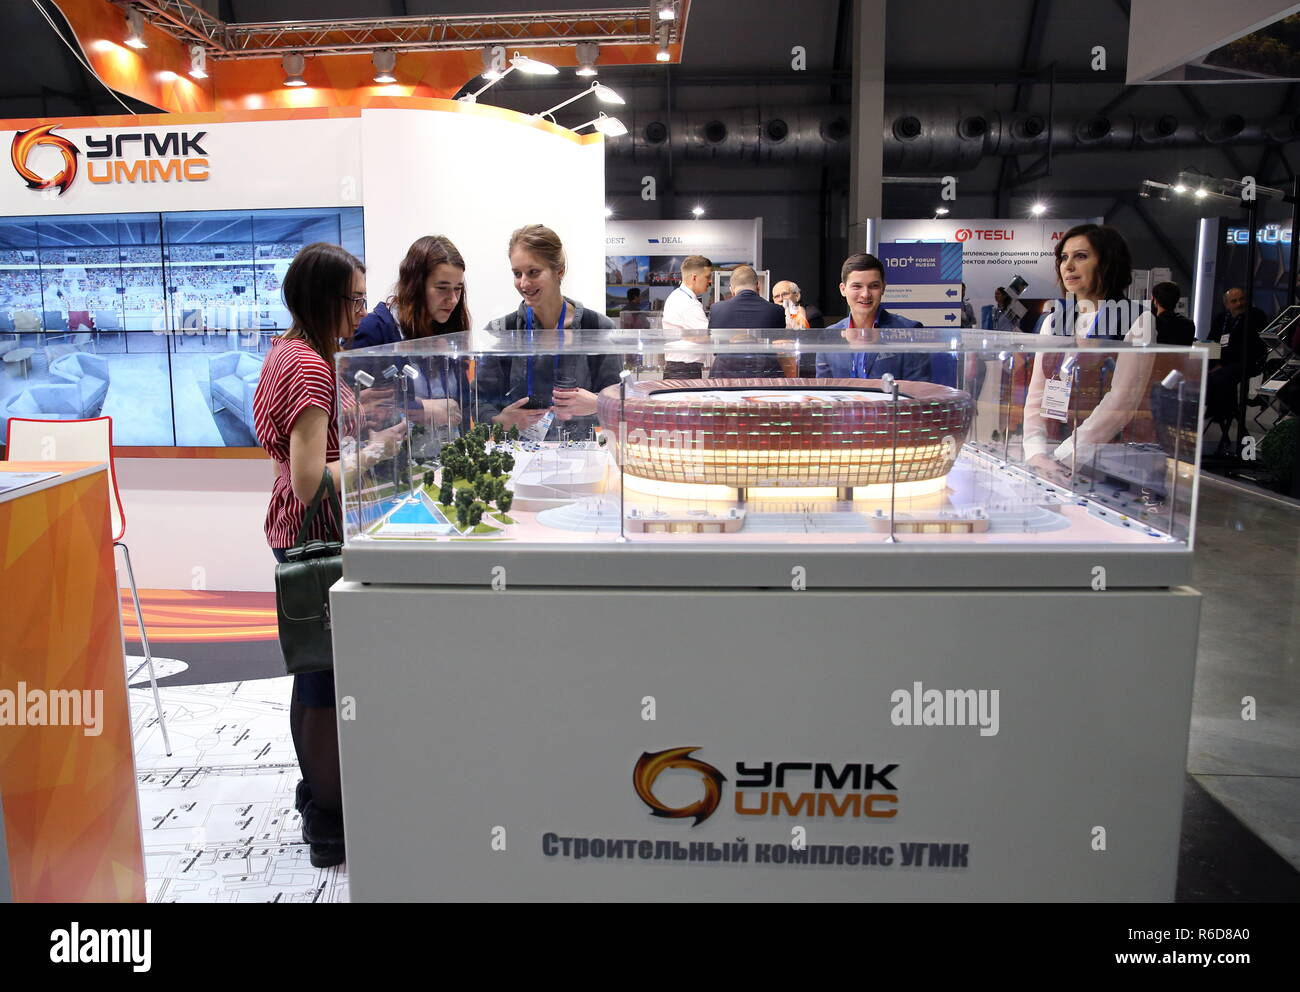 Yekaterinburg, Russia. 05th Dec, 2018. YEKATERINBURG, RUSSIA - DECEMBER 5, 2018: The Ural Mining and Metallurgical Company (UMMC) stand at the 100  Technologies International Forum for High-rise and Special Construction at the Yekaterinburg-Expo Exhibition Center. Donat Sorokin/TASS Credit: ITAR-TASS News Agency/Alamy Live News Stock Photo